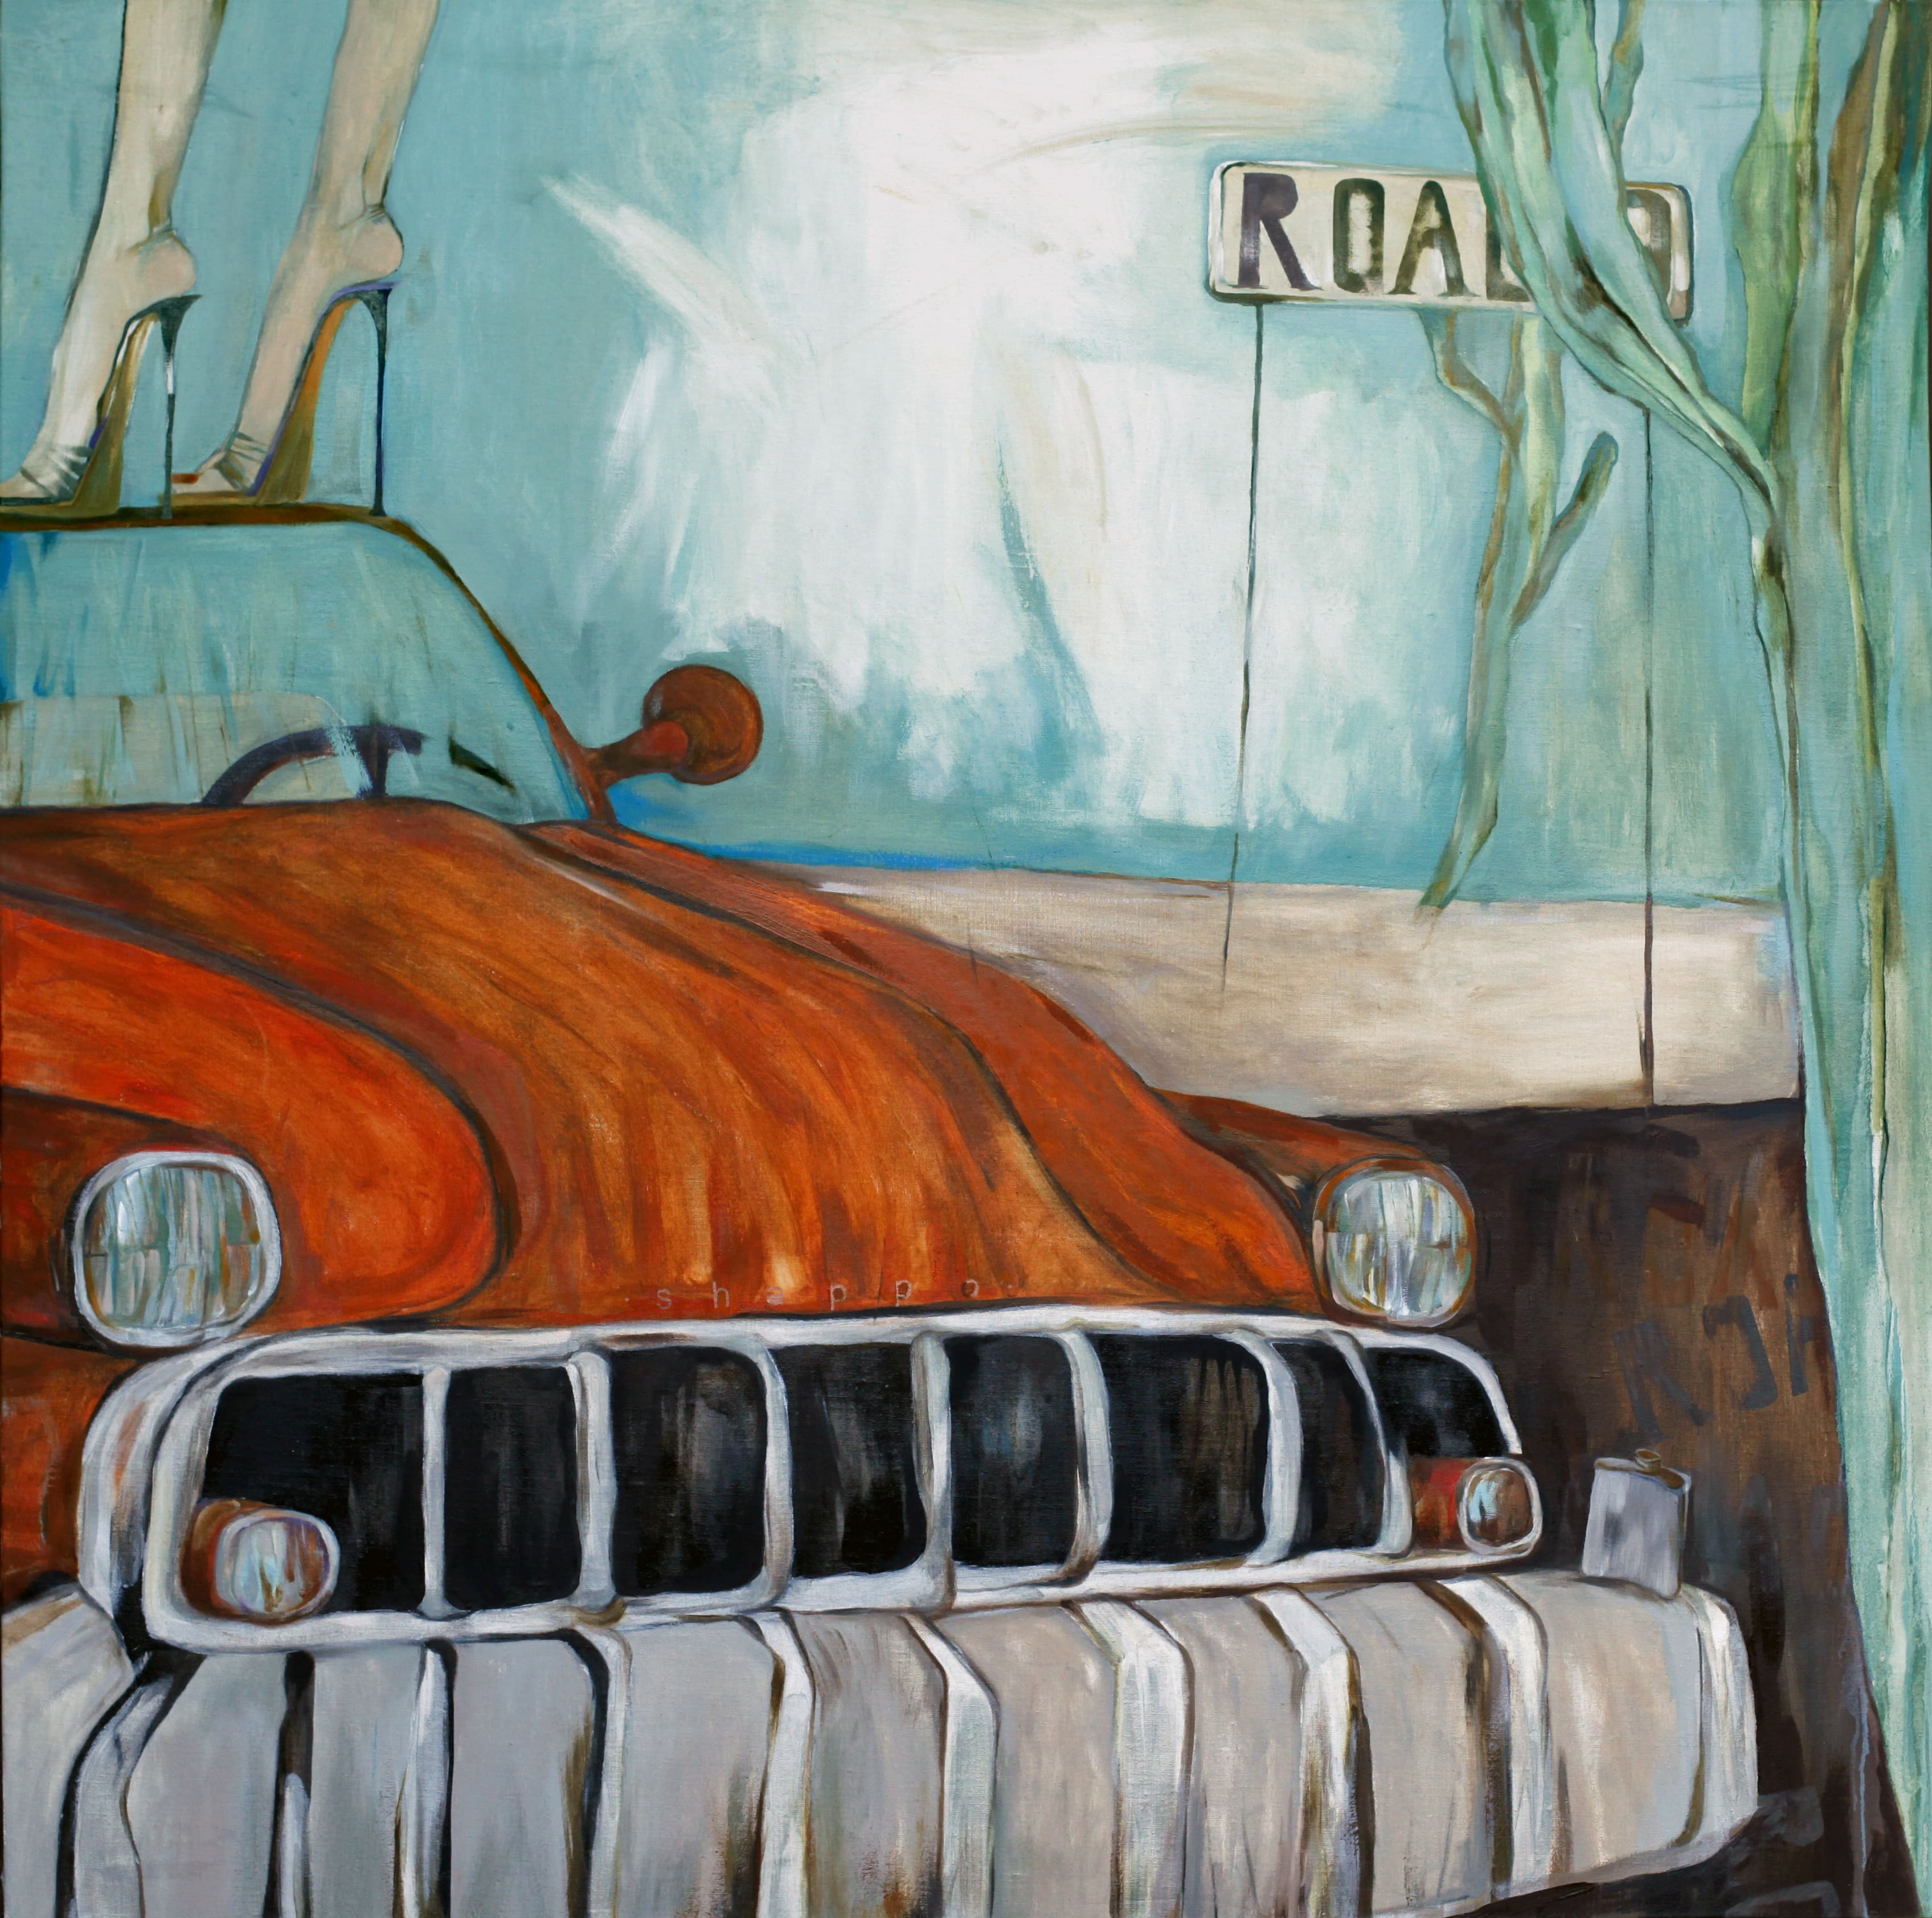 STILL LIFE WITH A FLASK OR HIGHWAY № 9. canvas. oil. acrylic. 160X160 cm.